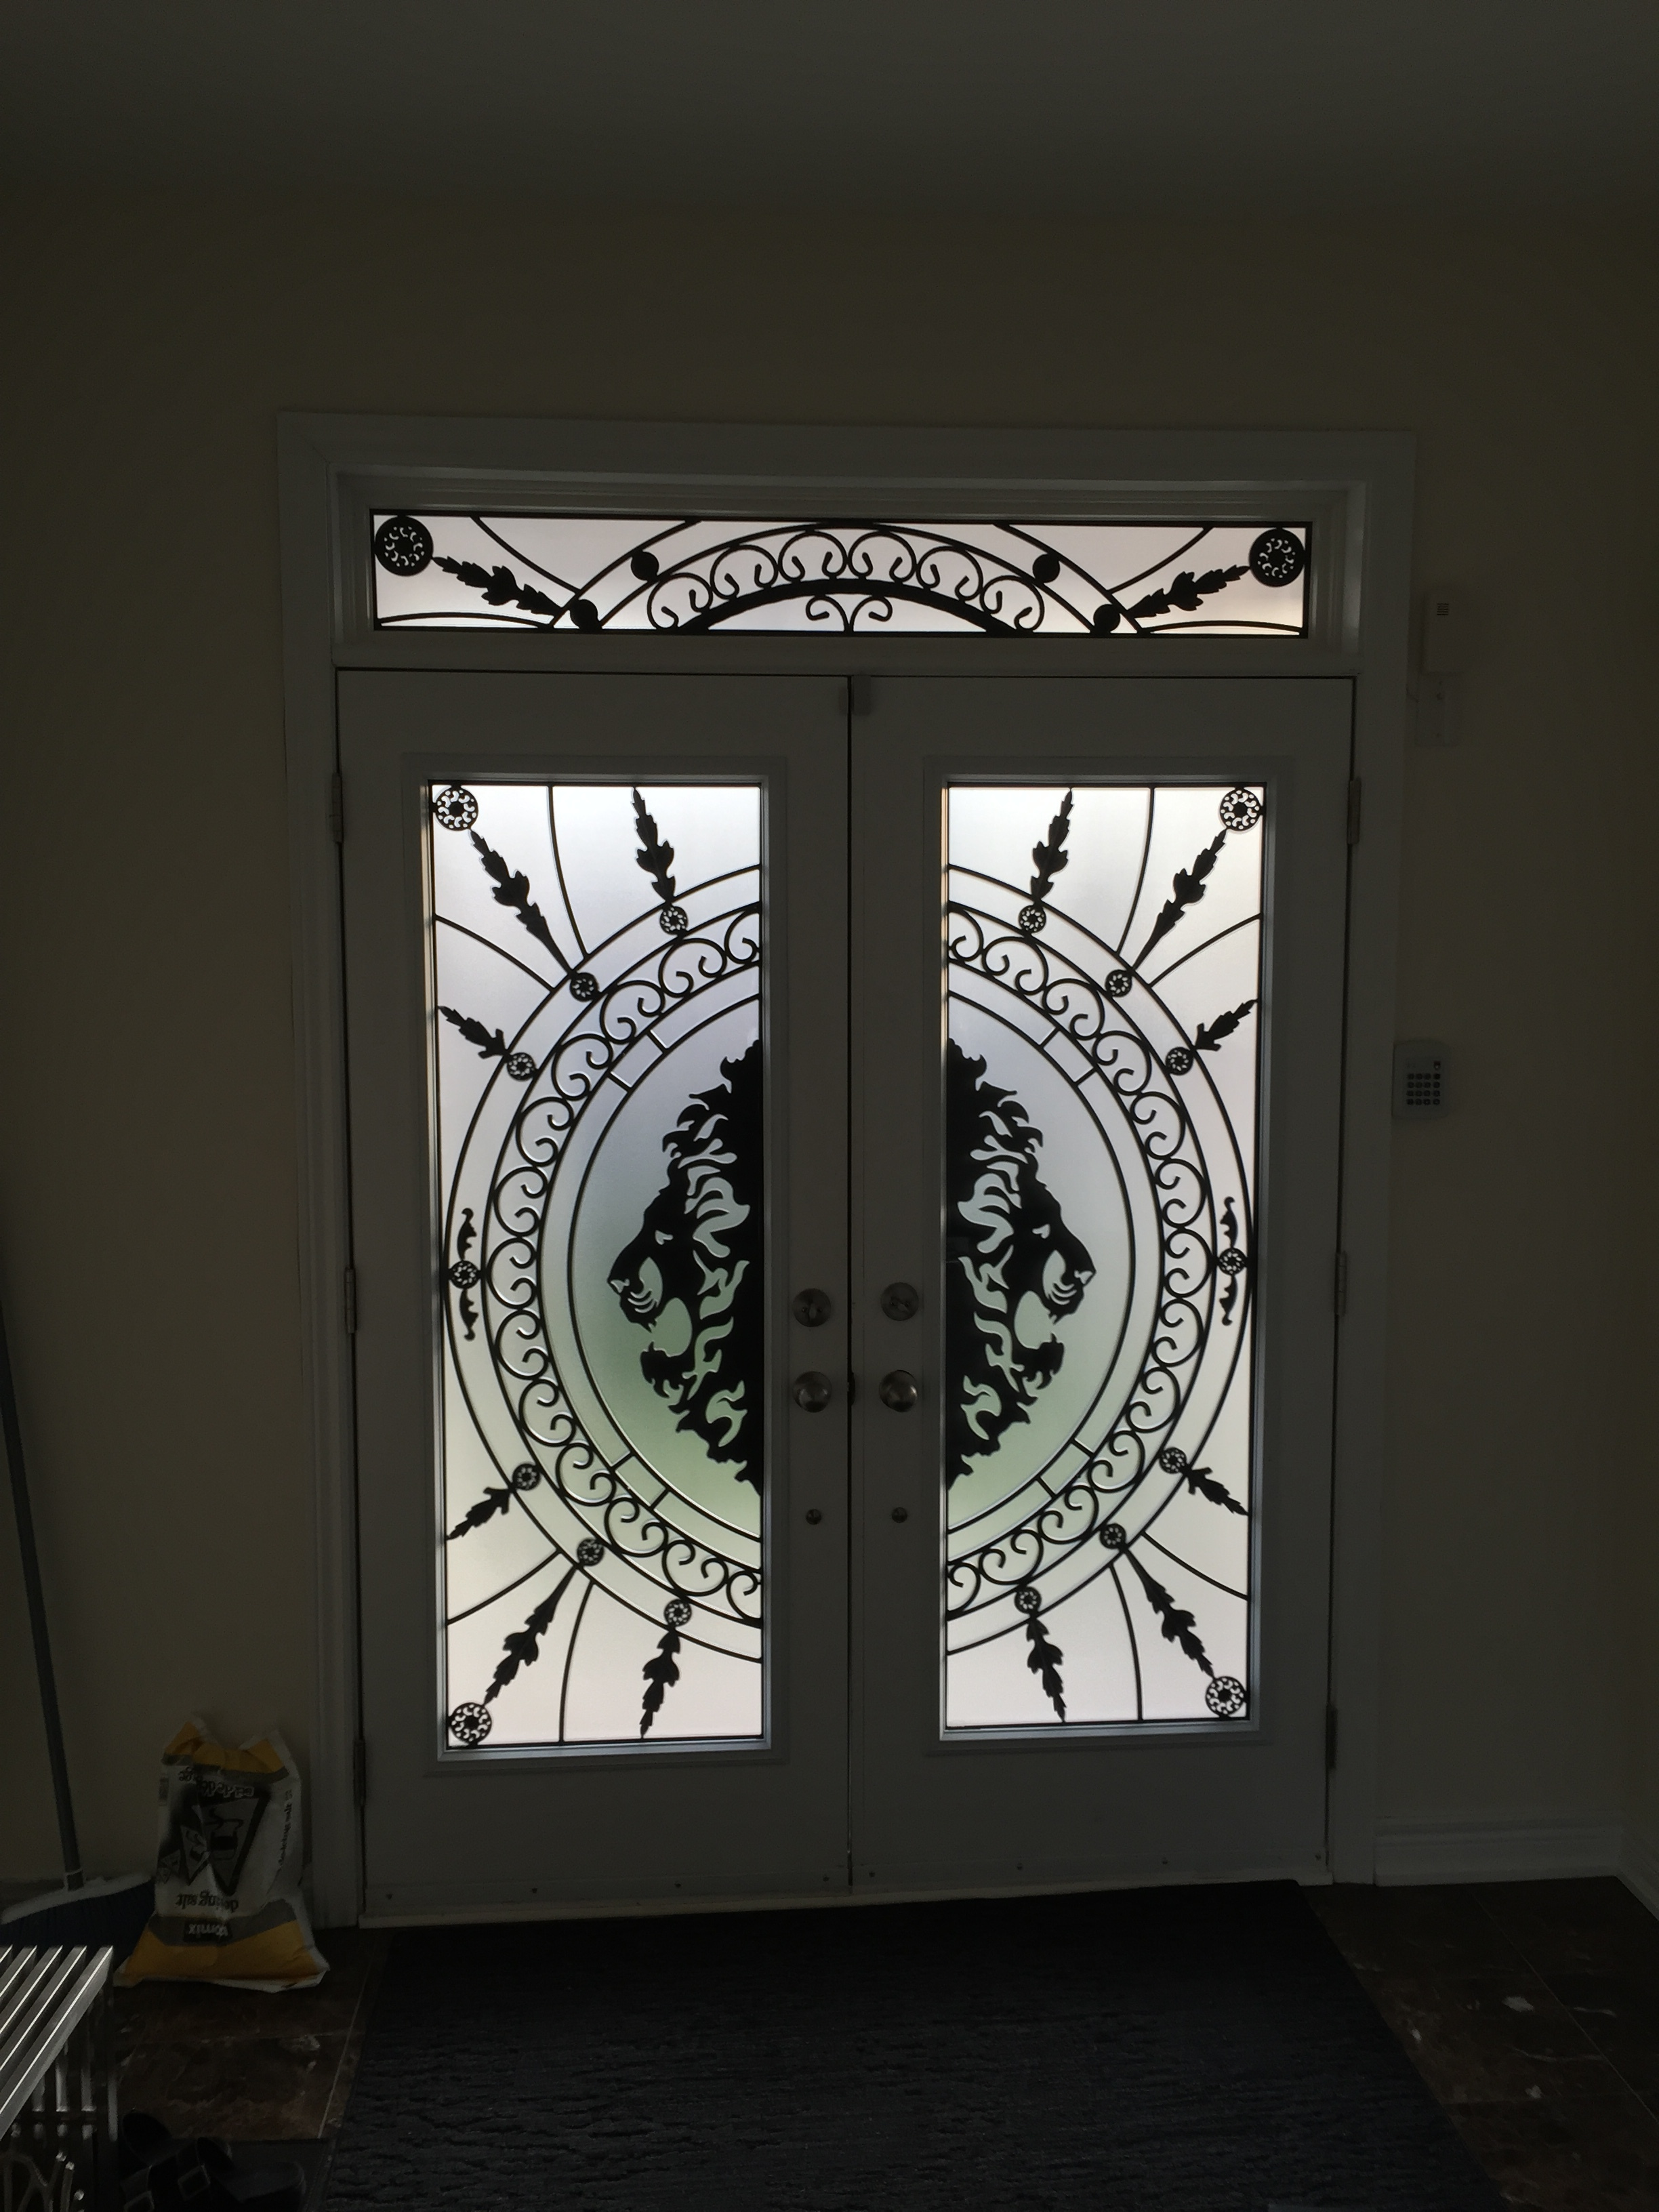 Forest-King-Wrought-Iron-Glass-Door-Inserts-Brampton-Ontario